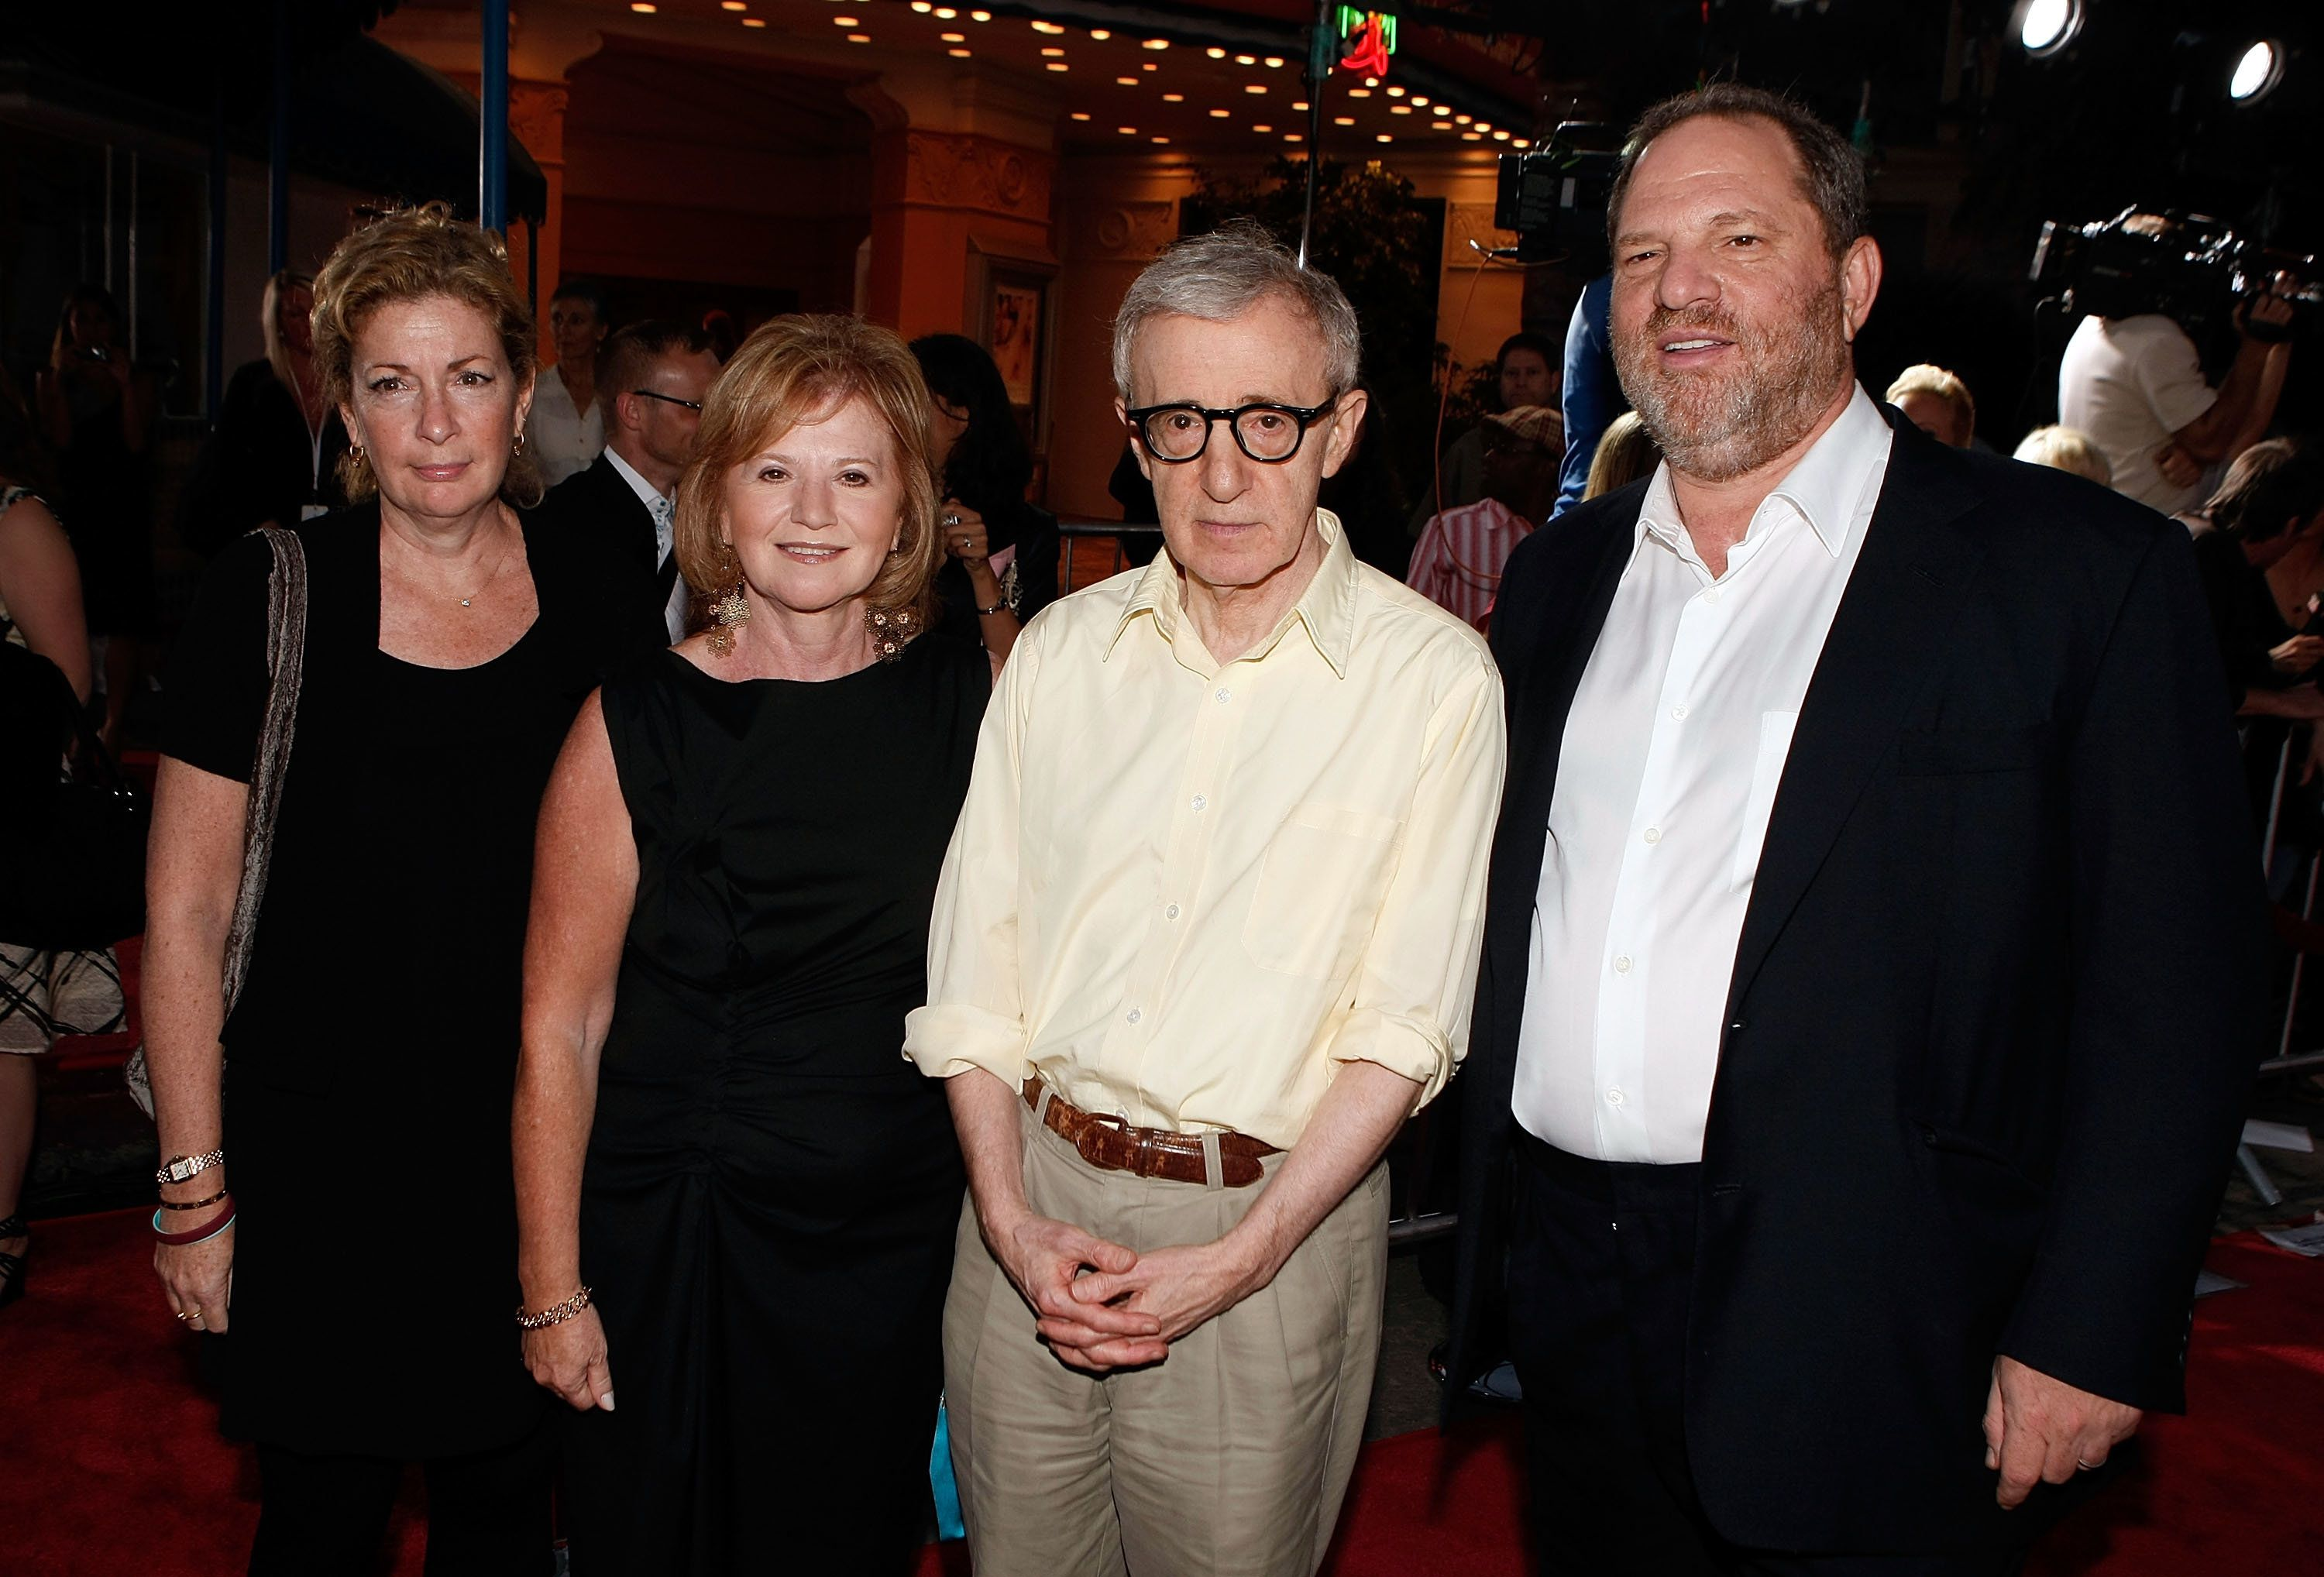 Woody Allen Says Harvey Weinstein Scandal Is 'Very Sad For Everyone